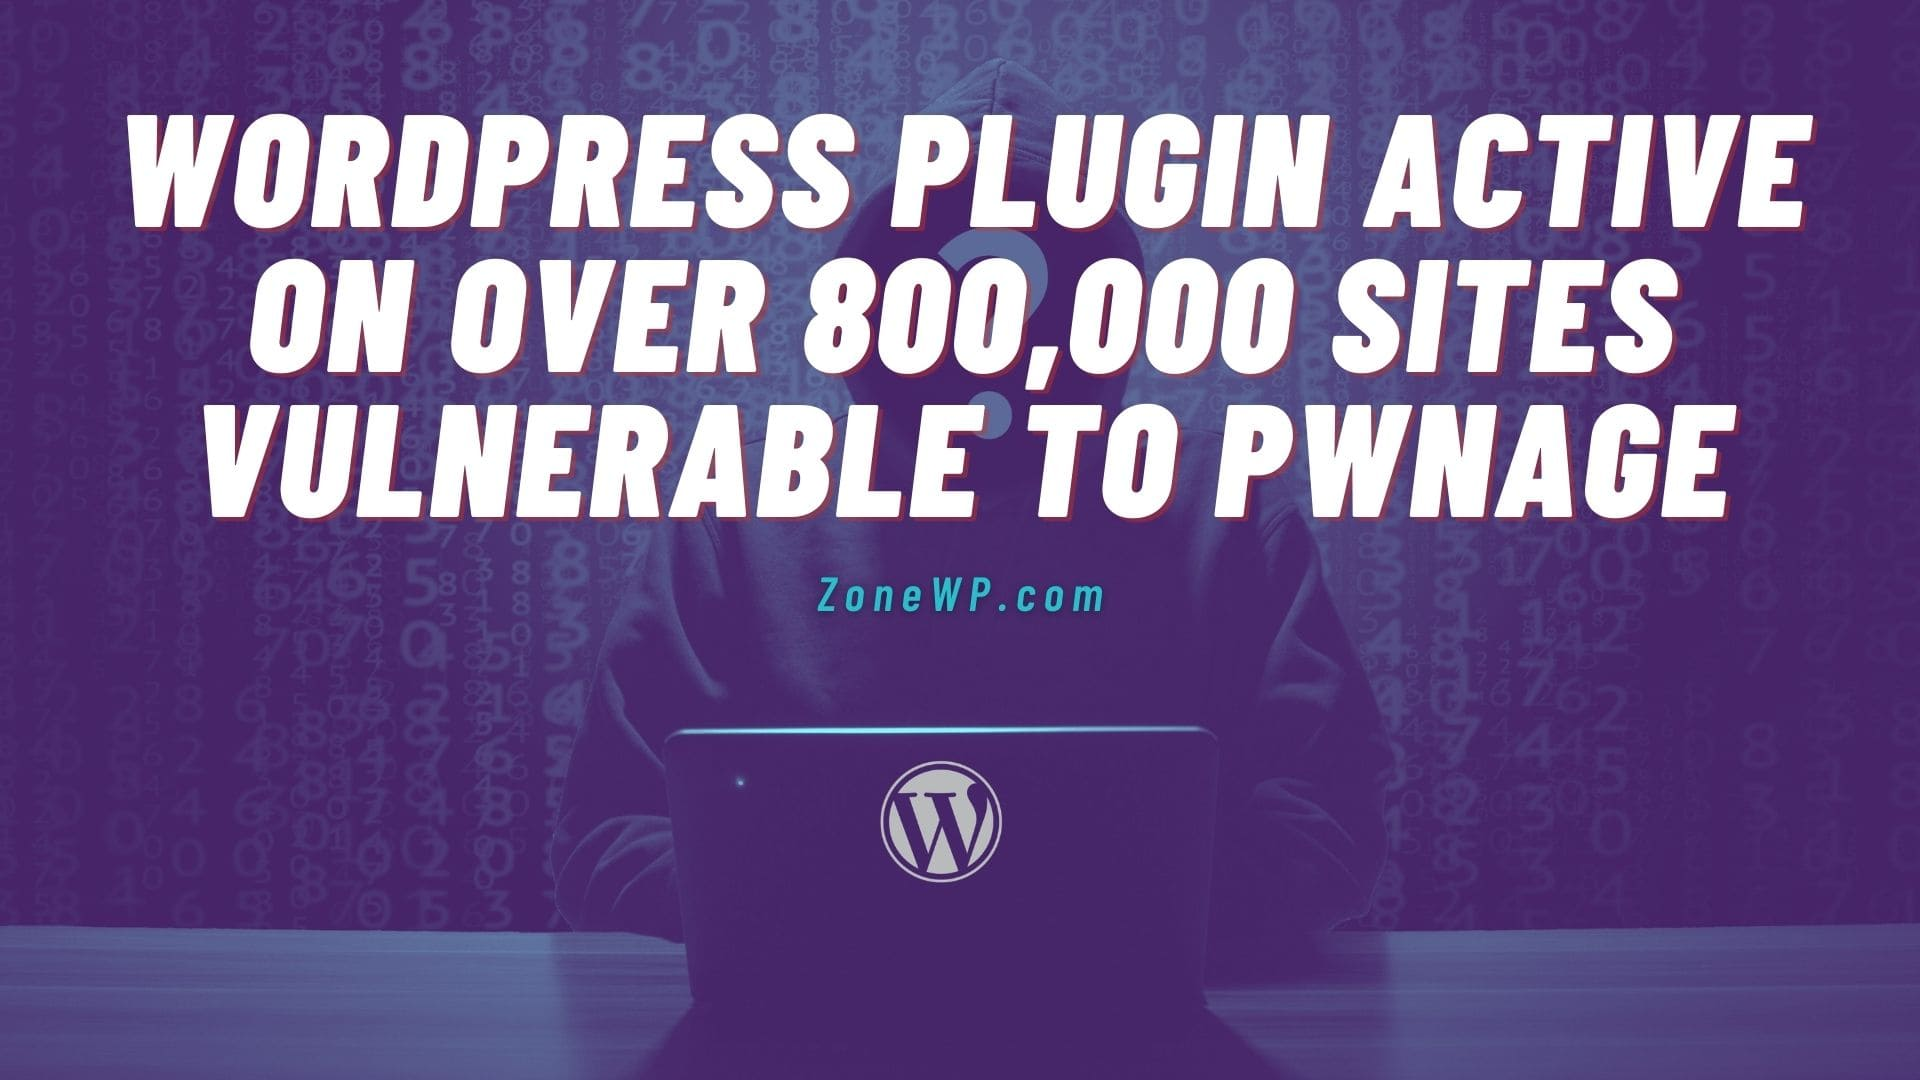 WordPress Plugin Active on over 800,000 Sites Vulnerable to pwnage